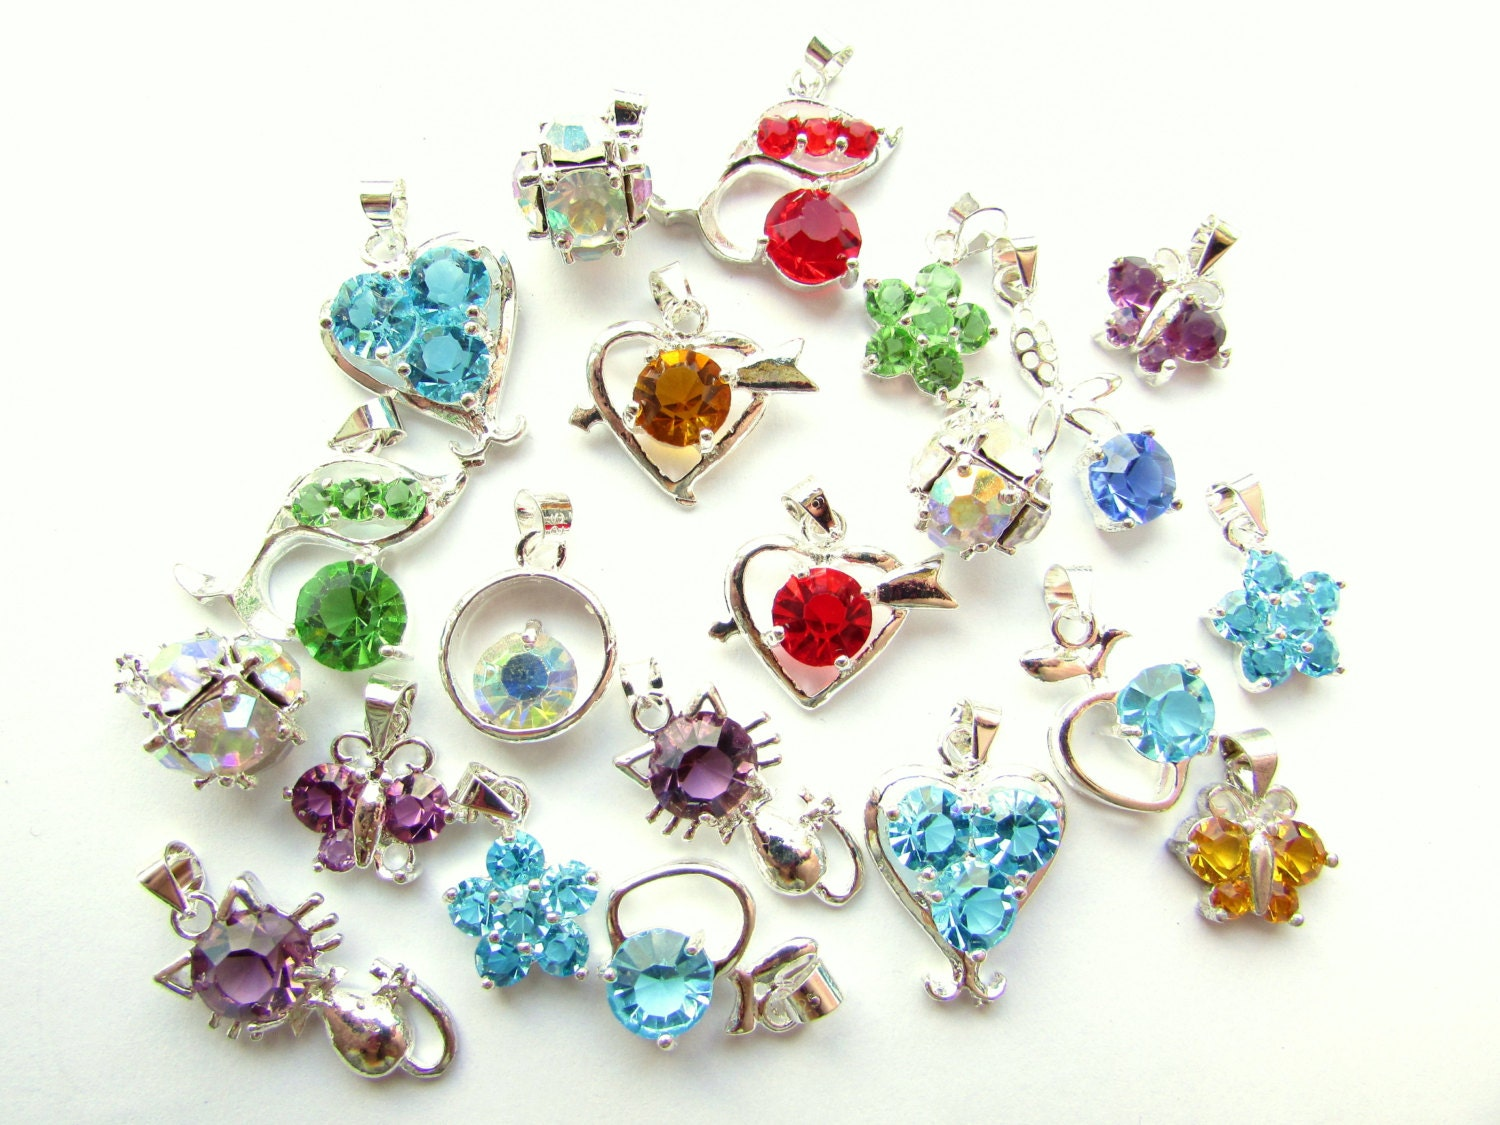 6pcs assorted glass rhinestone charms mixed colors charms for Craft and jewelry supplies